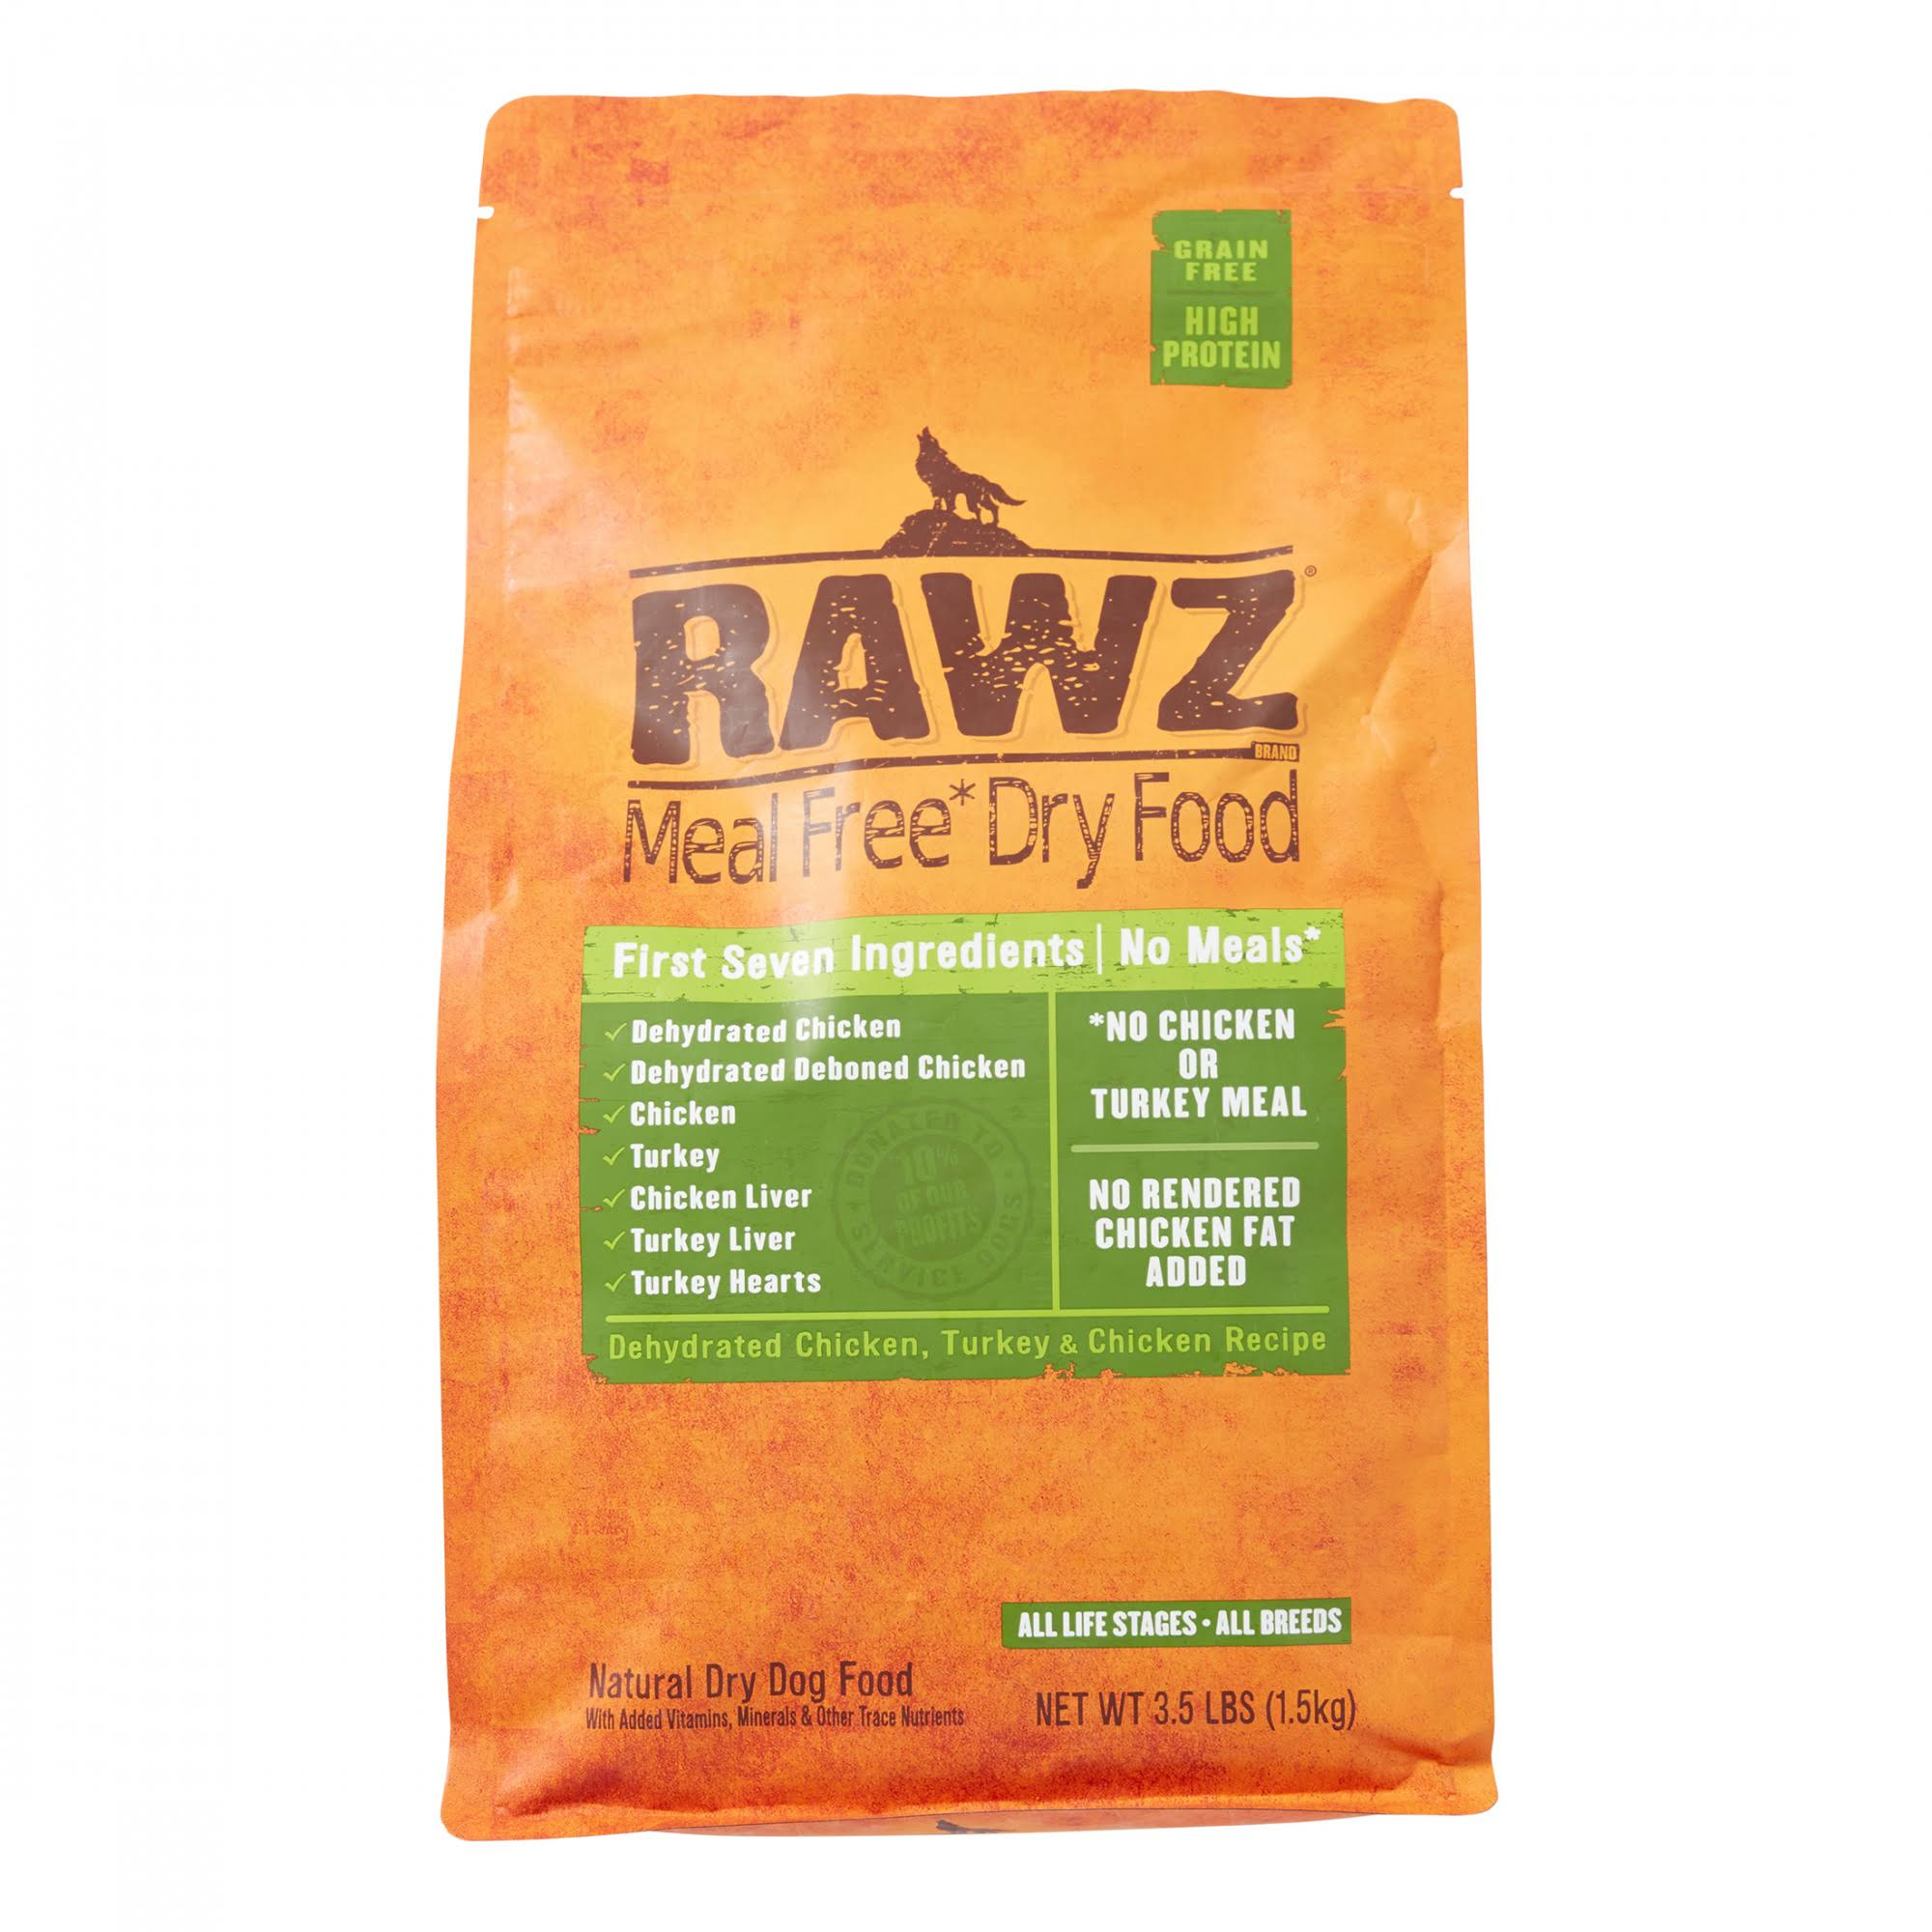 Rawz Meal Free Dry Dog Food - Dehydrated Chicken Turkey and Chicken Recipe, 3.5oz